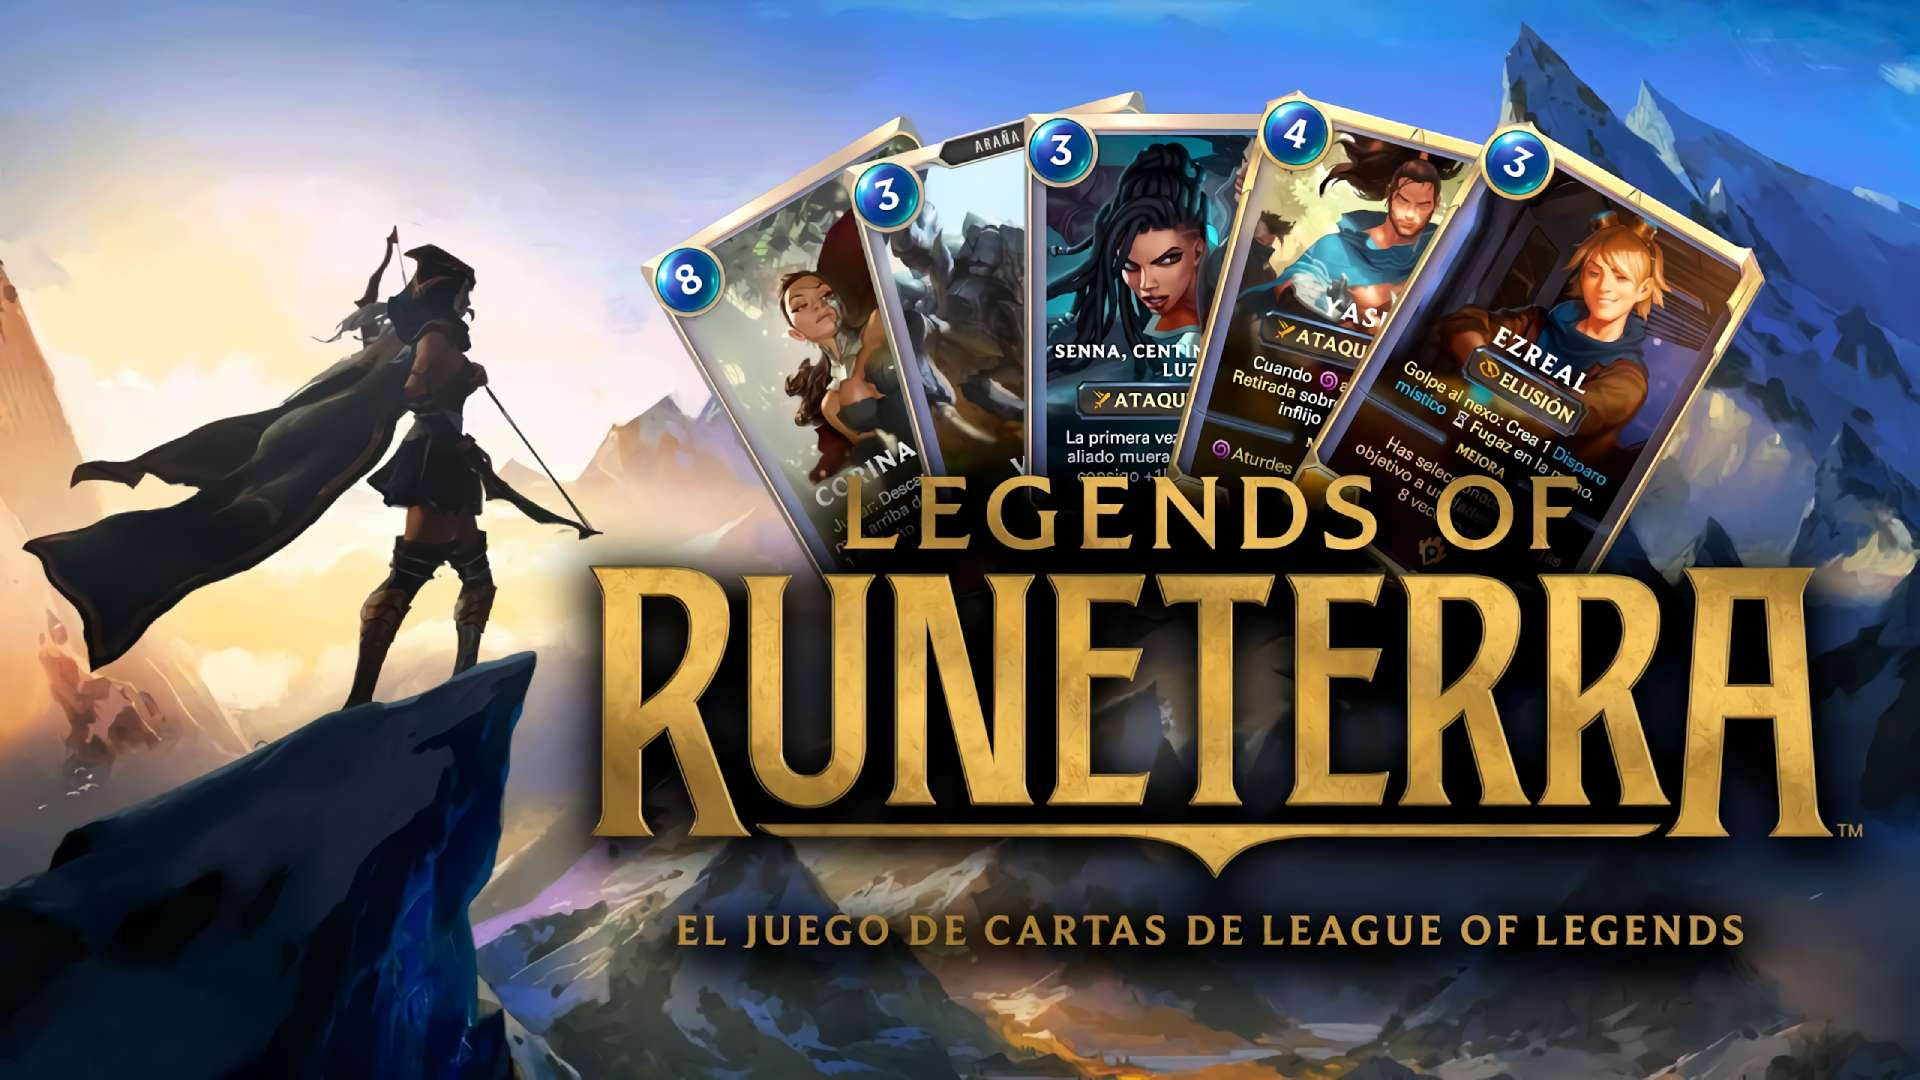 Ya puedes probar la beta de Legends of Runeterra, el esperado juego de cartas de League of Legends